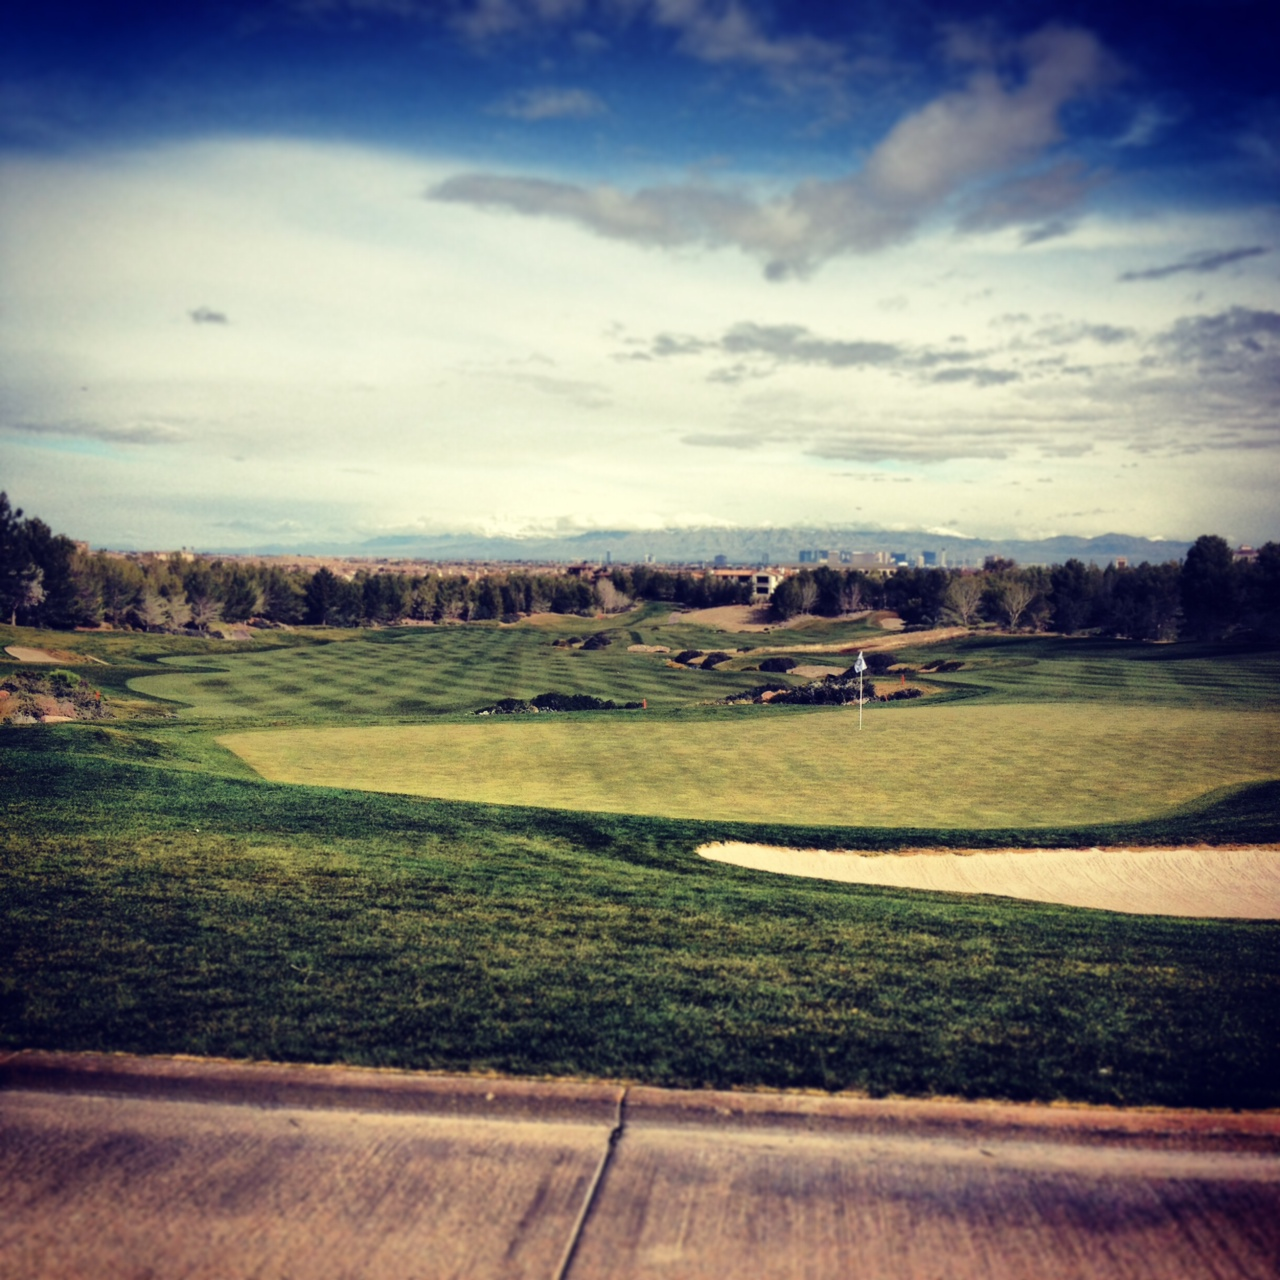 No. 8 at Southern Highlands